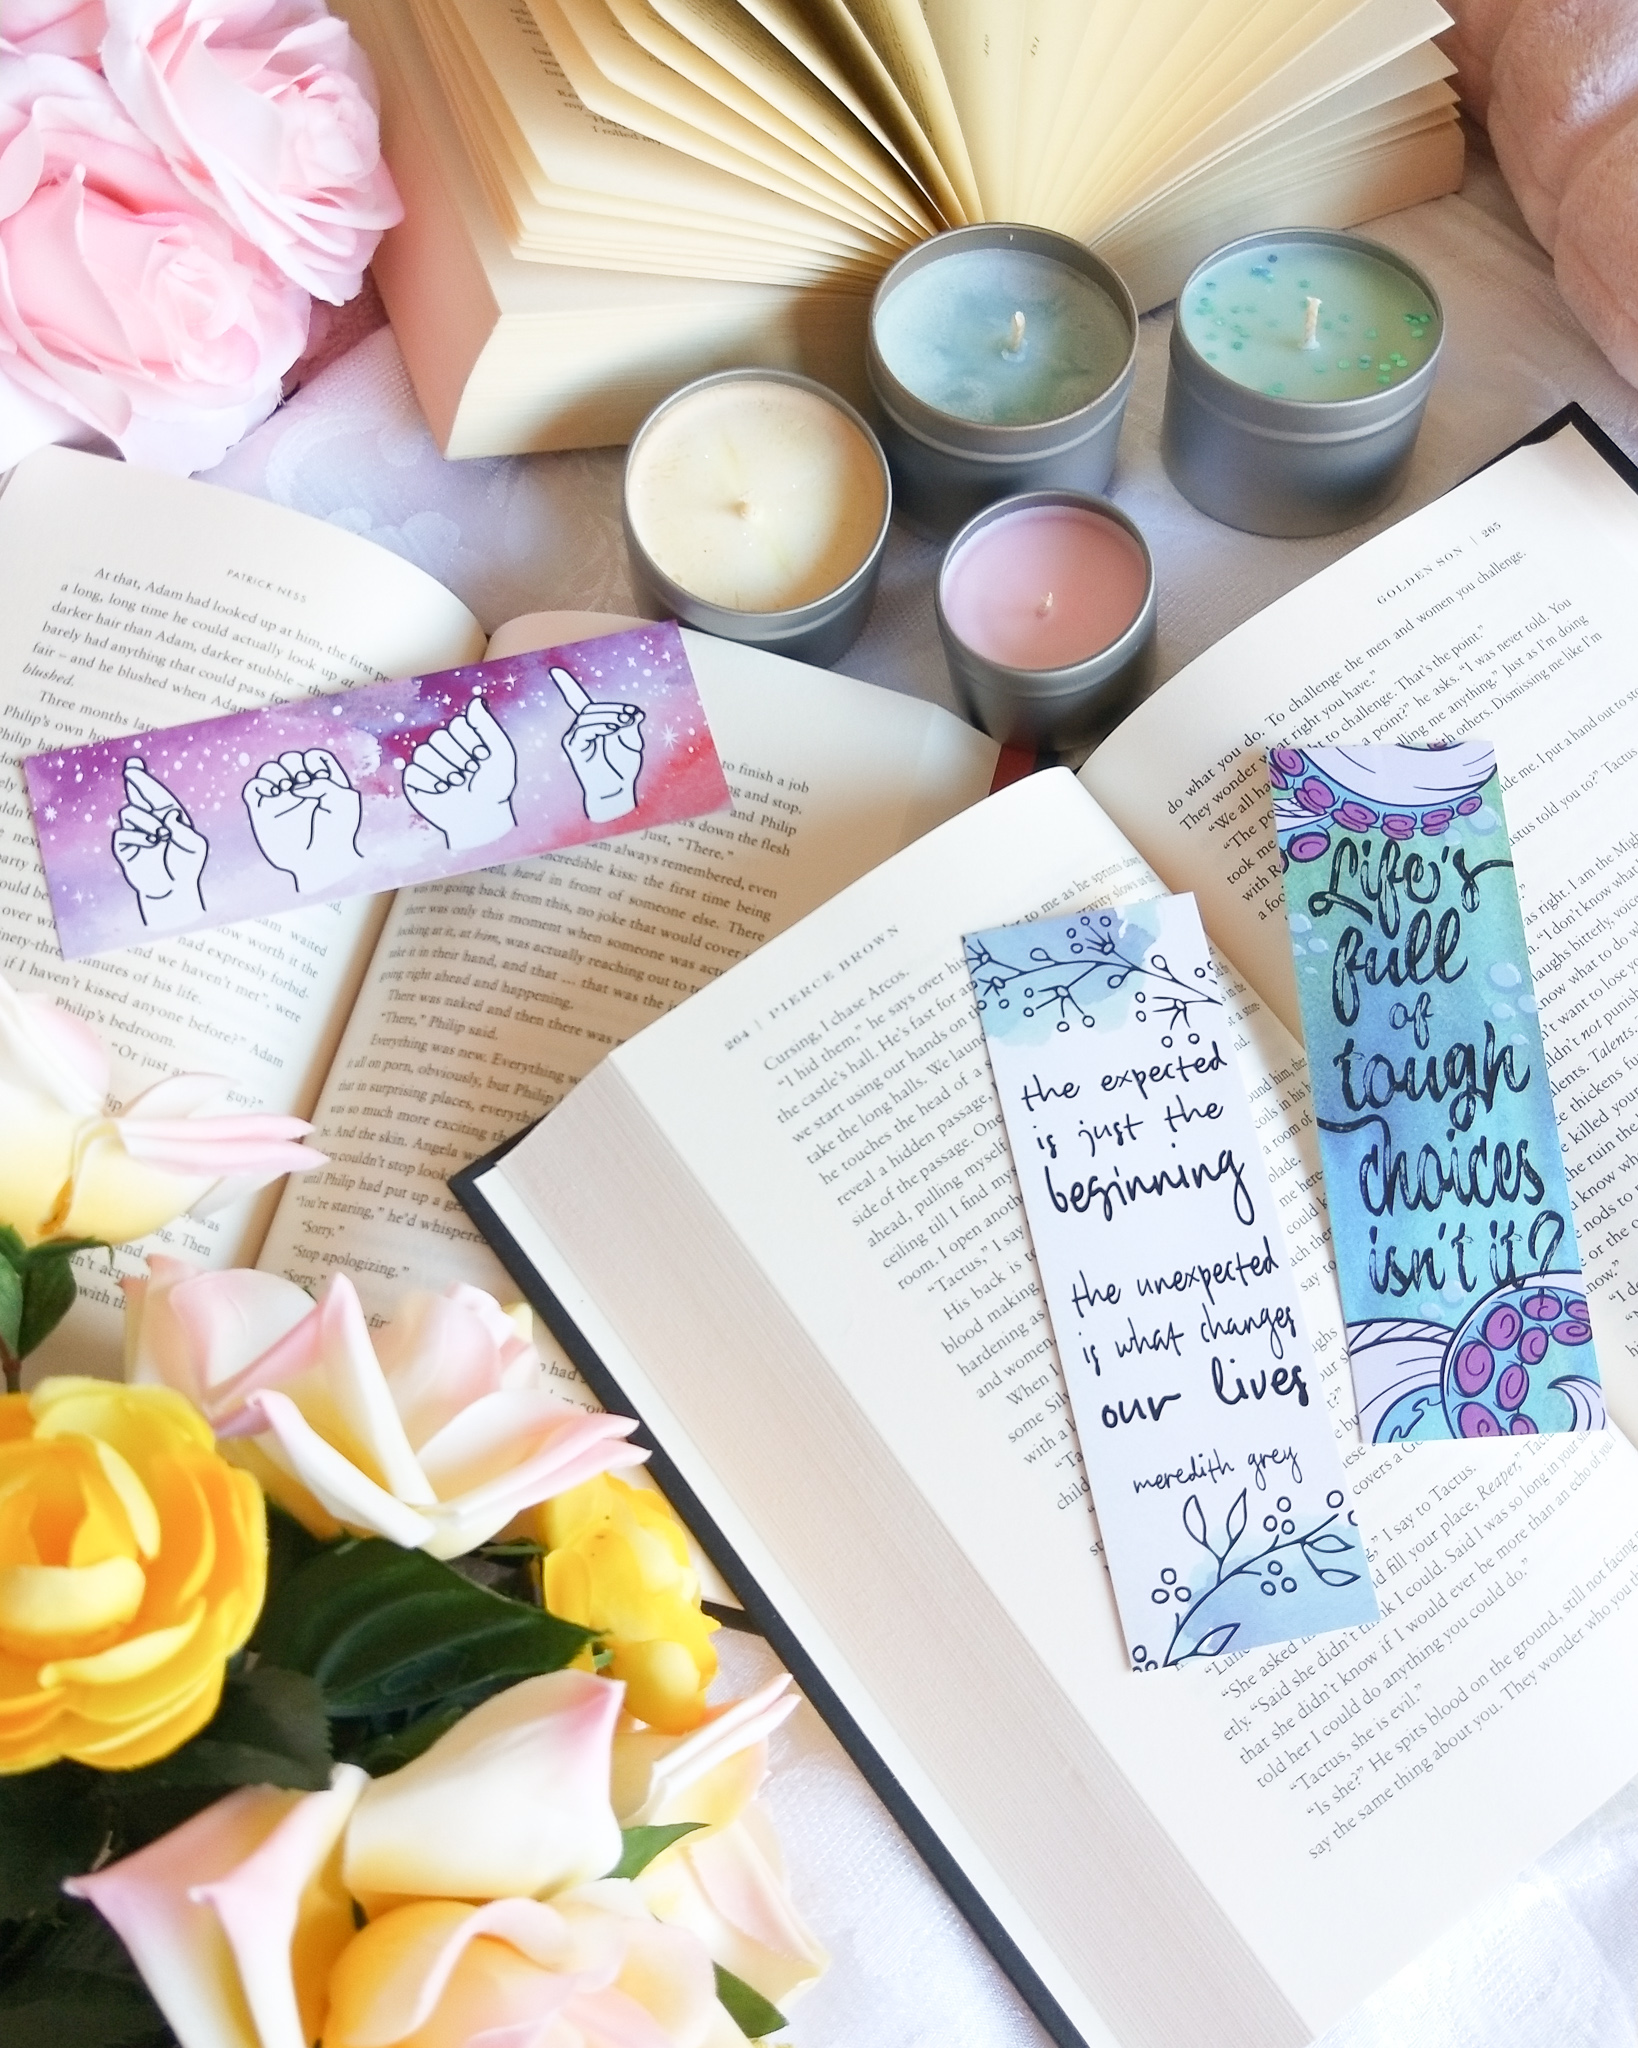 Discussion: Bookstagram & The Disillusion of Popularity Online